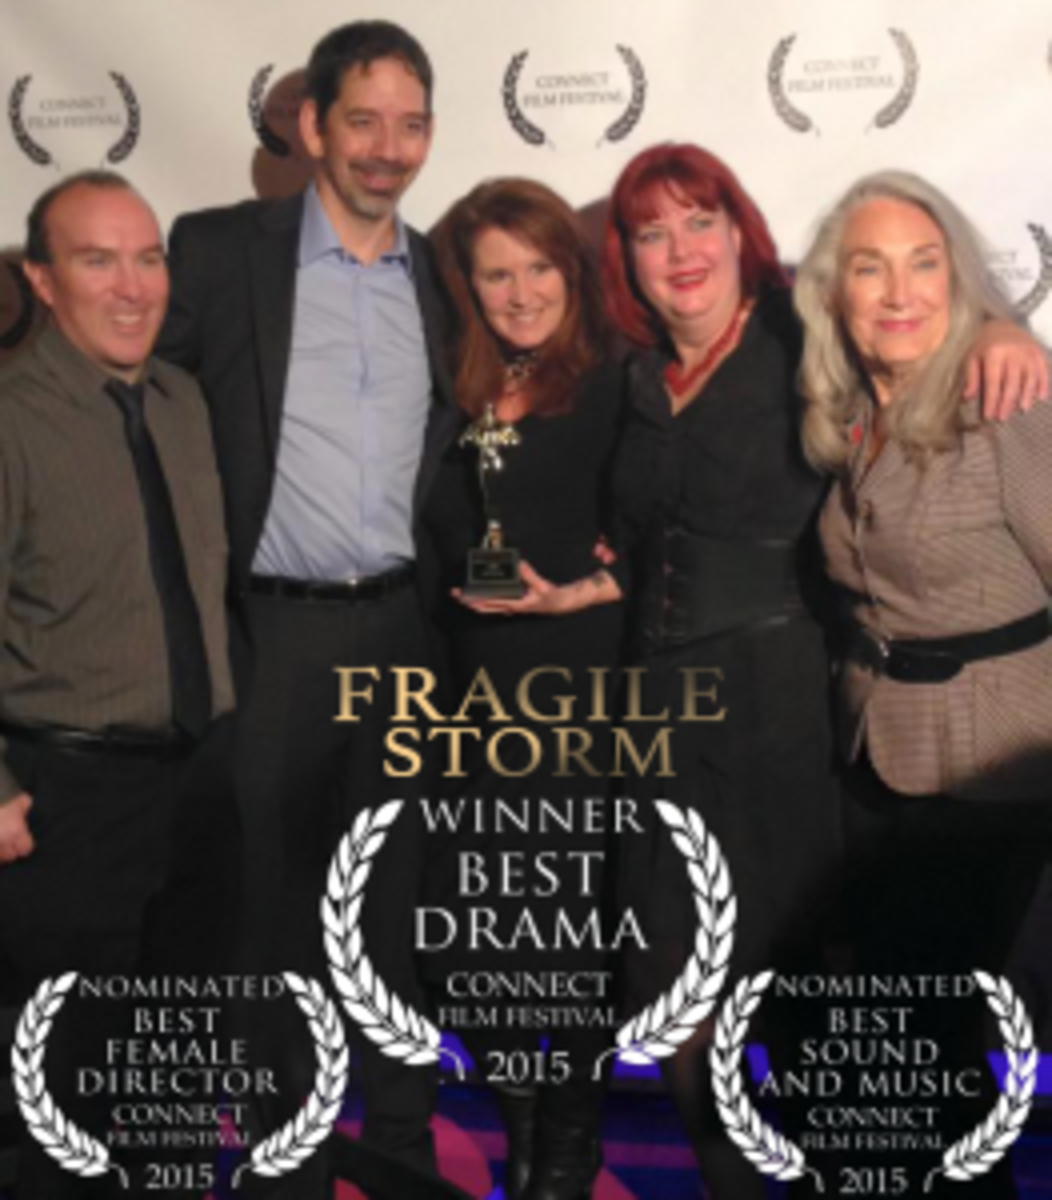 Some of the Fragile Storm cast & crew: James Popiden, Kelly Raymer, Dawn Fields, Debbie Rankin and Jody Jaress.